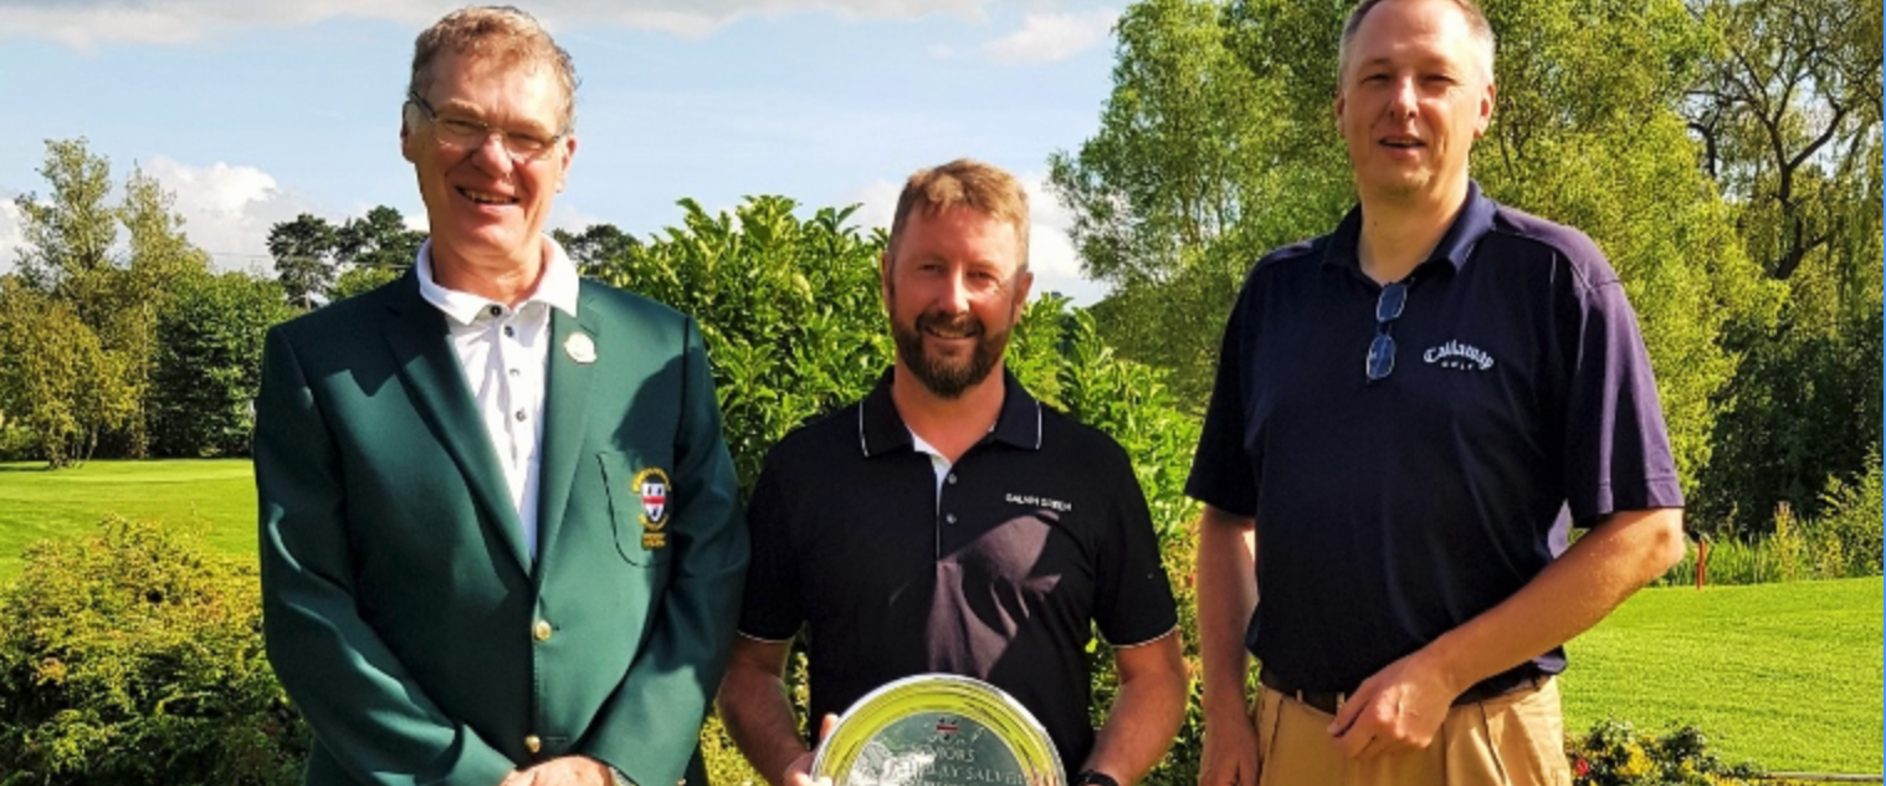 Congratulations to Duncan MacPherson ( Worcs G&CC) 2019 County Seniors Match Play Champion